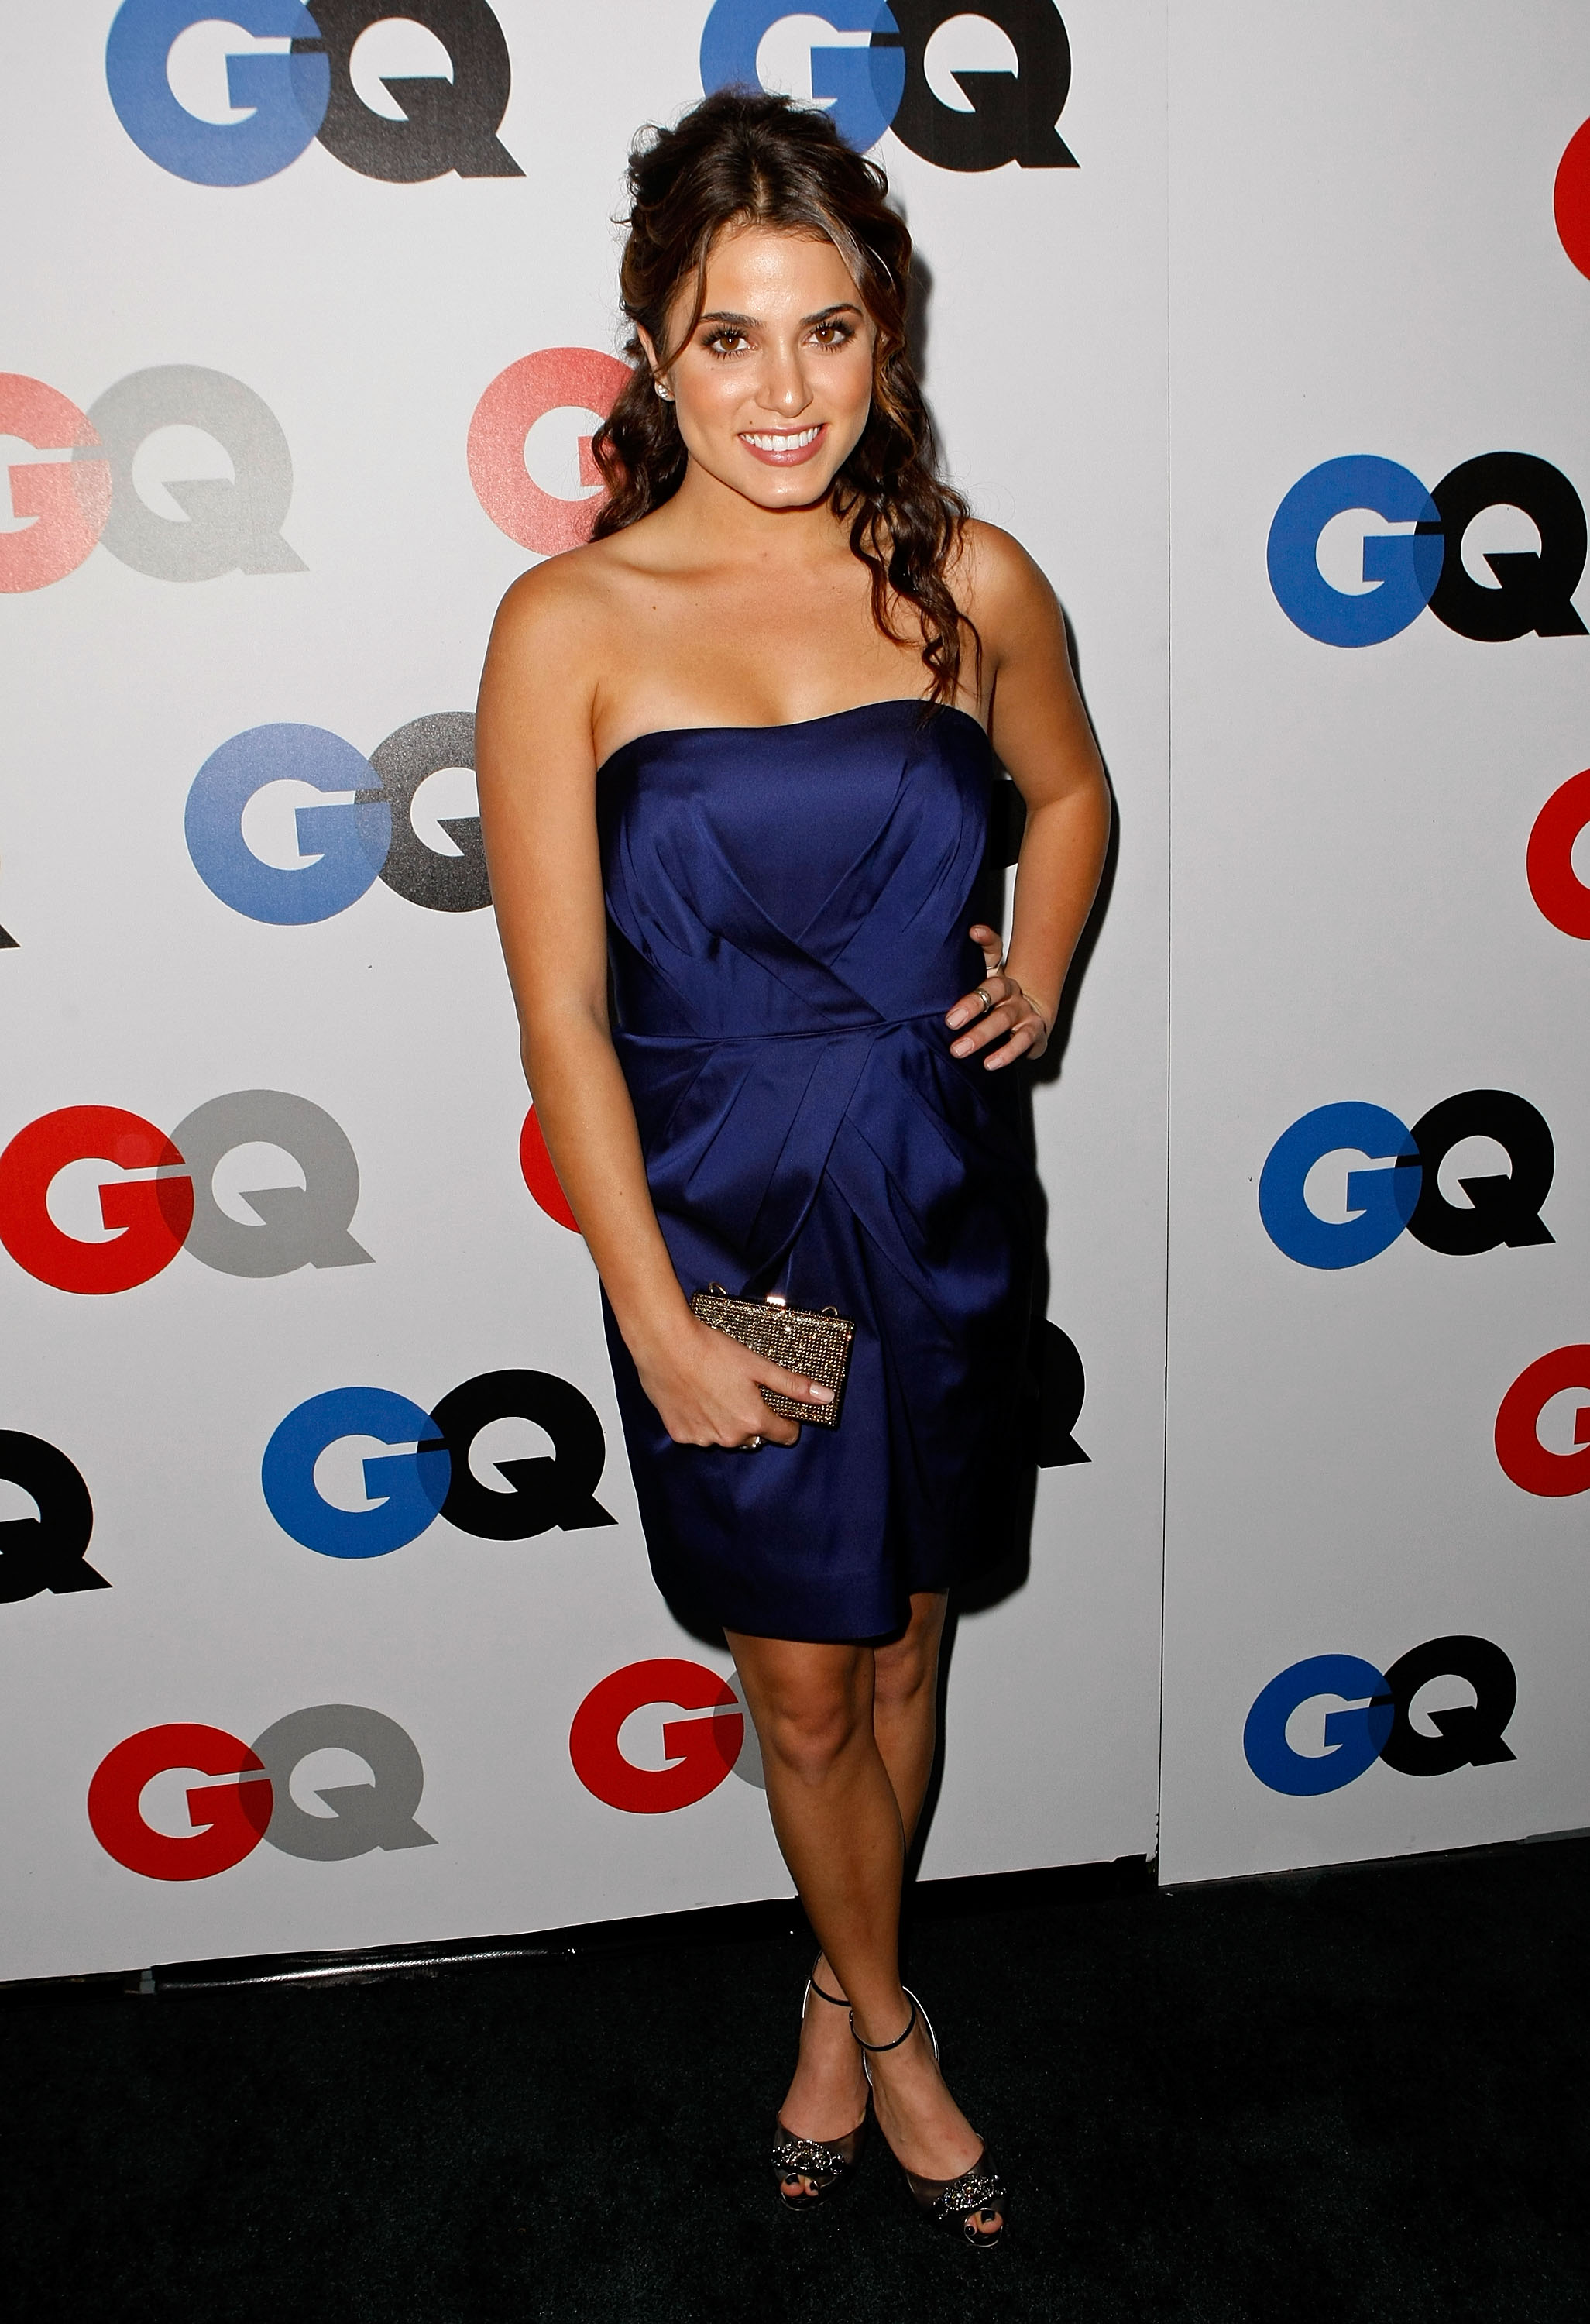 96451_Celebutopia-Nikki_Reed-GQ_Men_of_the_Year_party-02_122_112lo.jpg